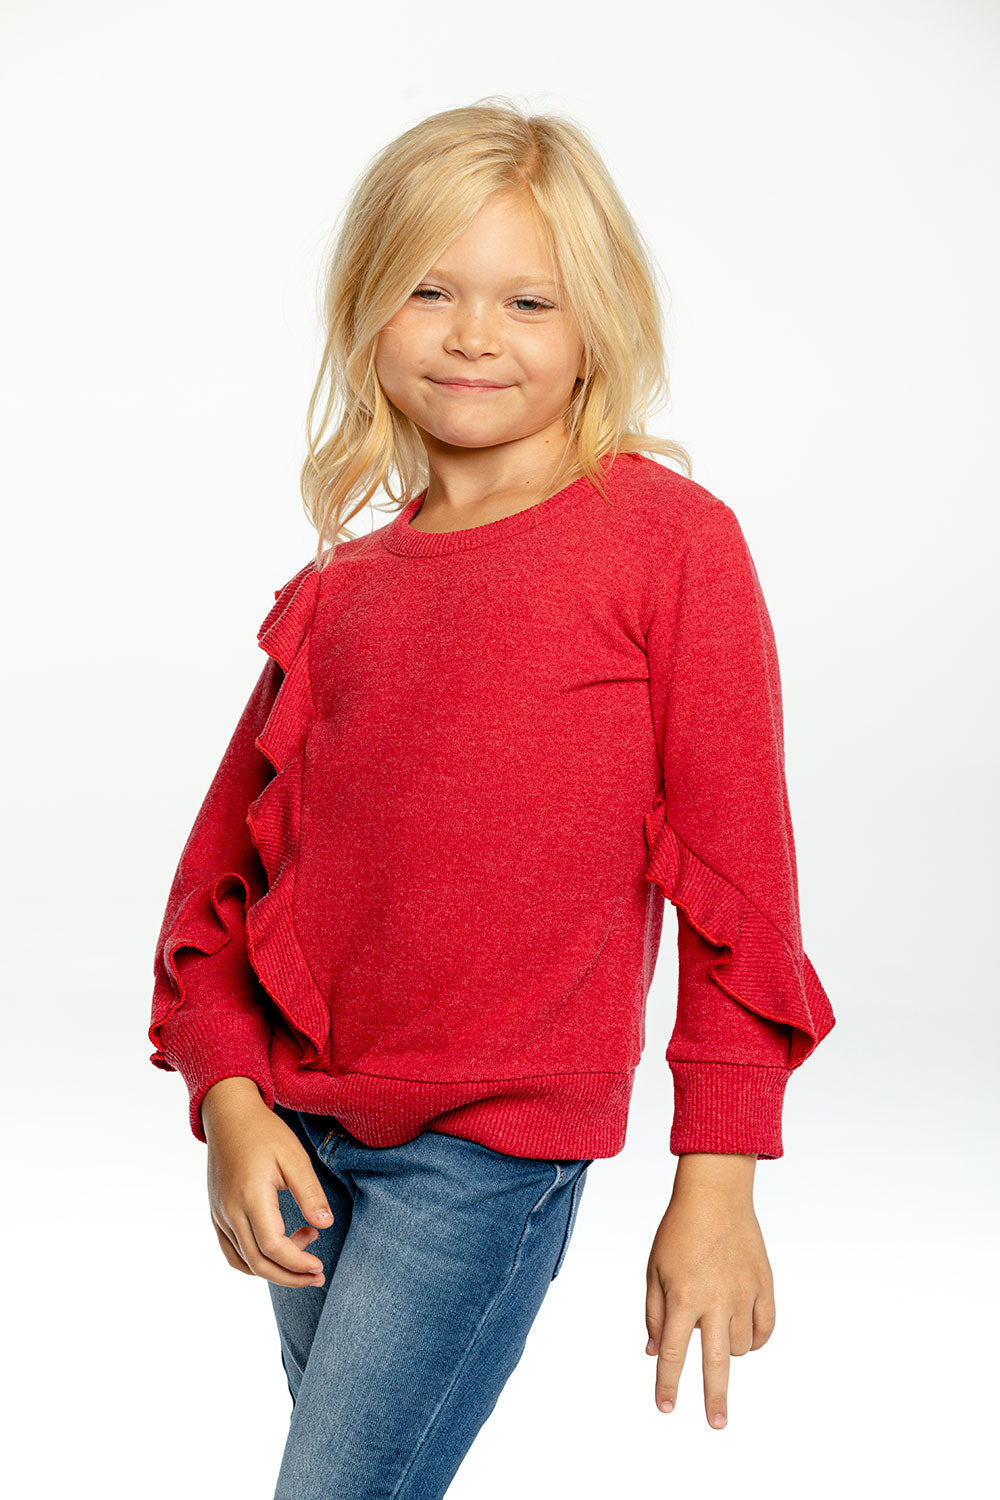 Girls Bliss Knit Long Sleeve Asymmetrical Ruffle Pullover GIRLS chaserbrand4.myshopify.com